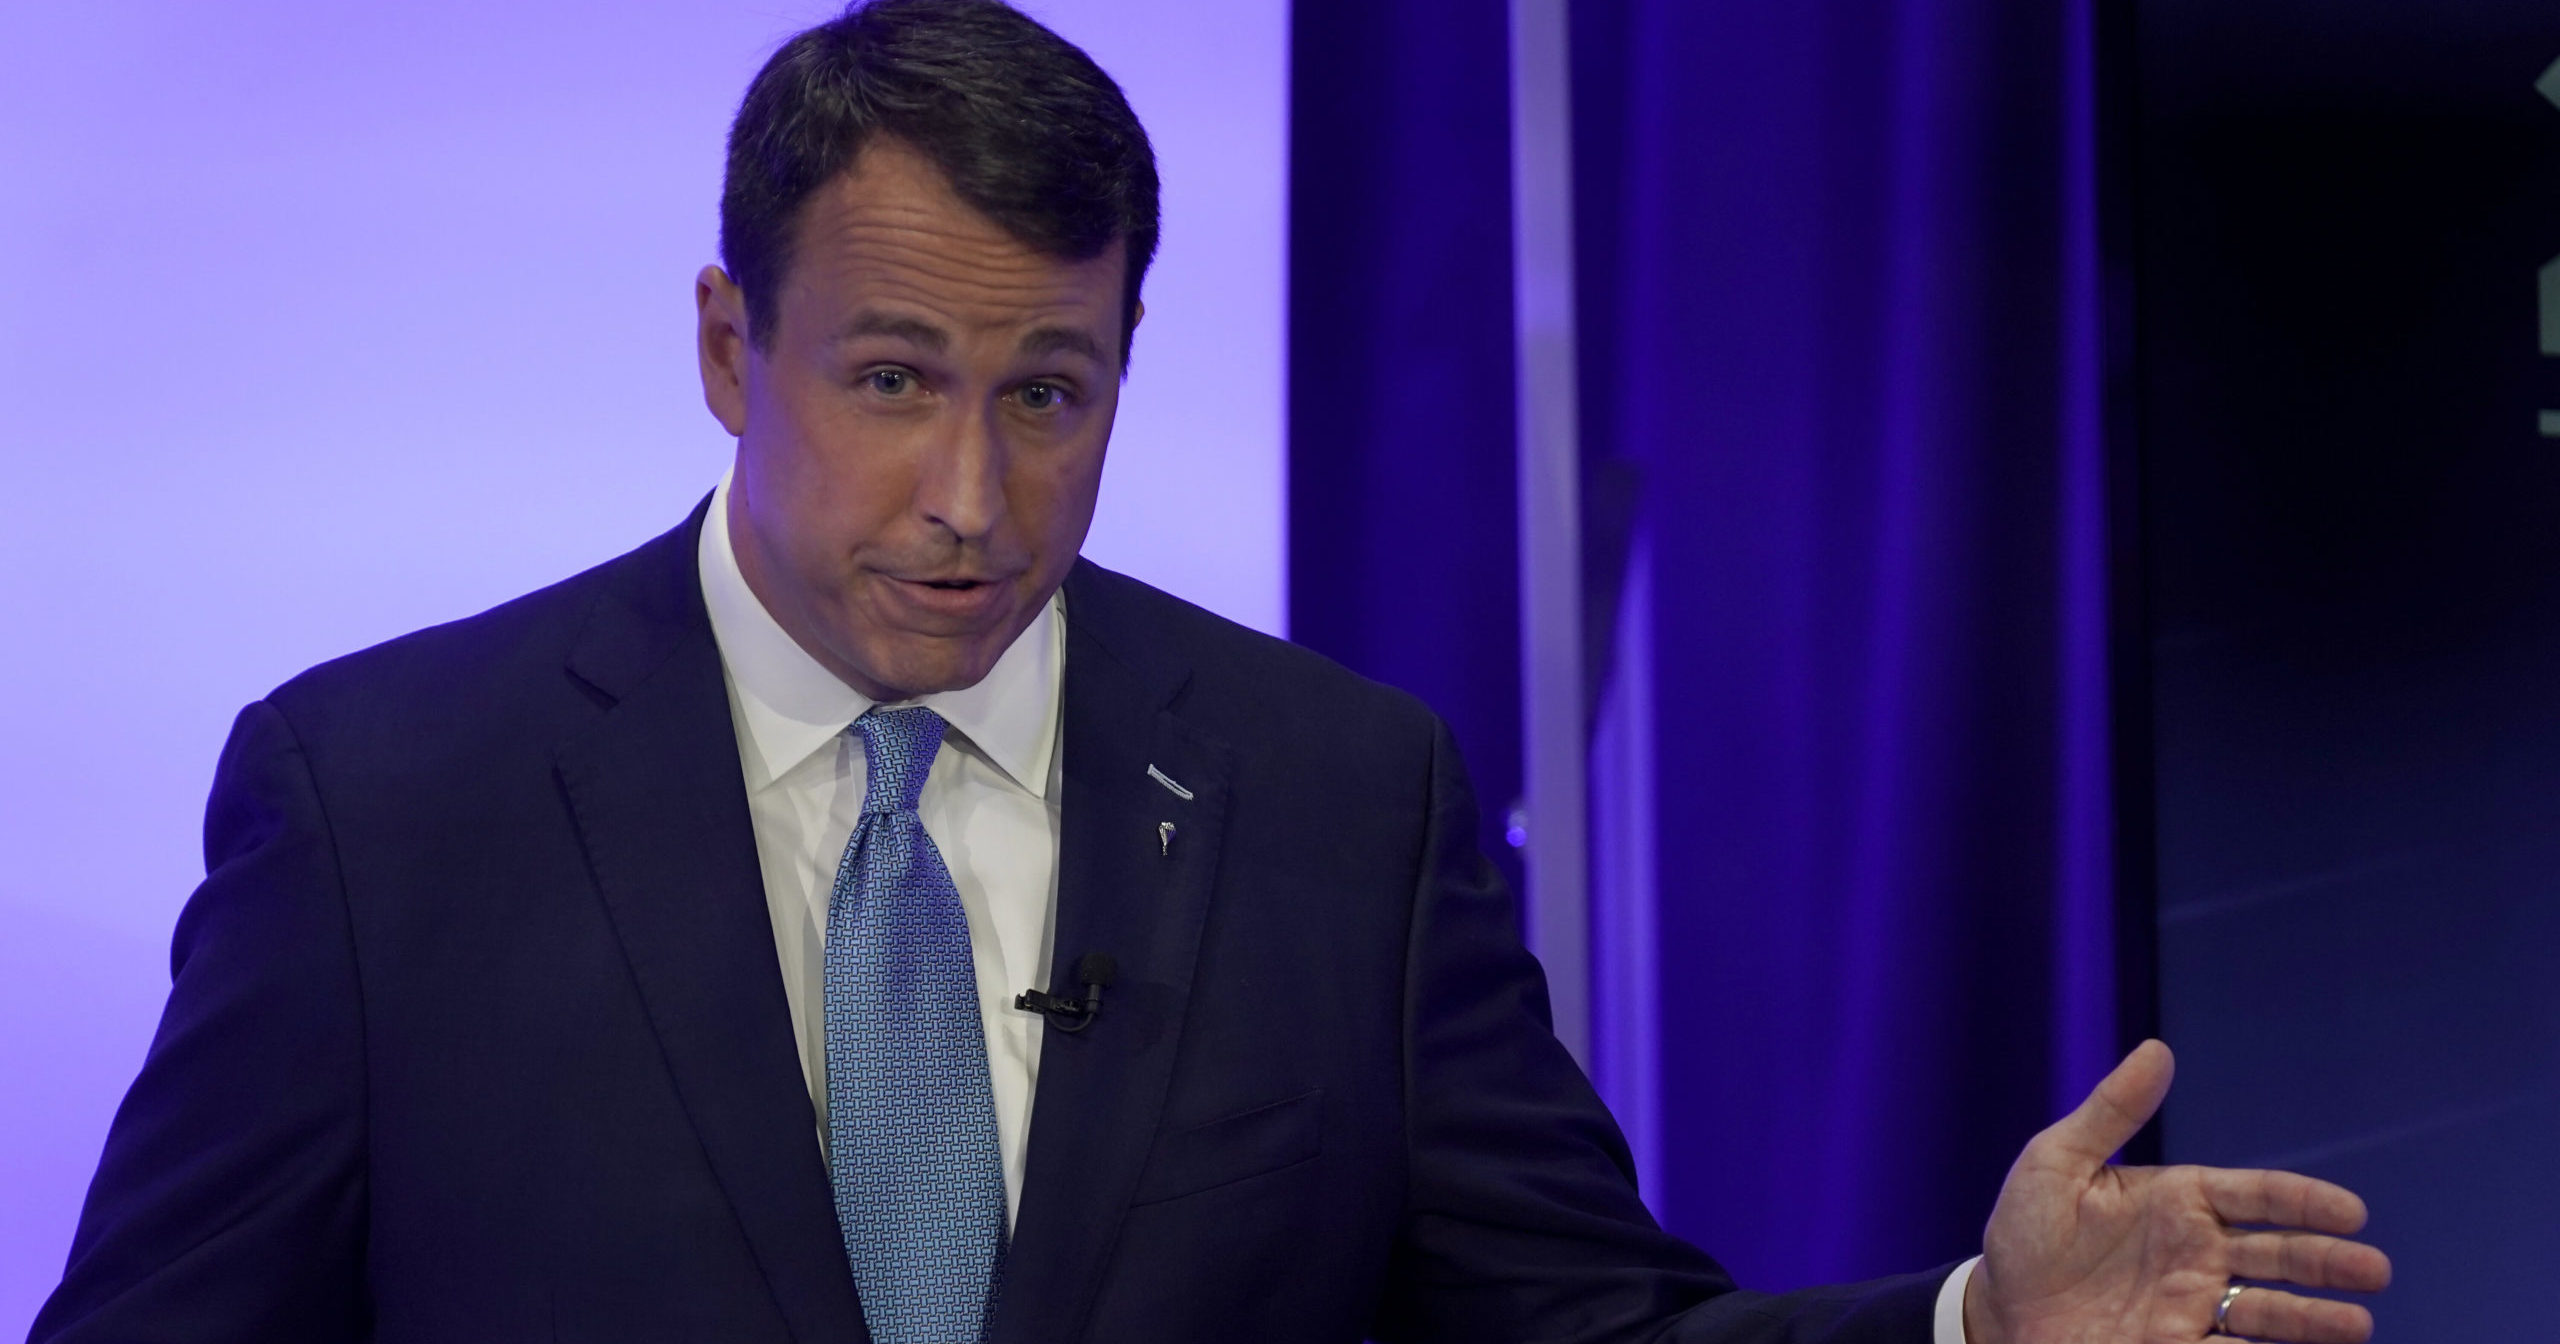 Democratic challenger Cal Cunningham speaks during a televised debate with U.S. Sen. Thom Tillis on Oct. 1, 2020, in Raleigh, North Carolina. Cunningham has admitted to sending sexual text messages to a strategist who is not his wife. Cunningham apologized but said he would not drop out of the race.